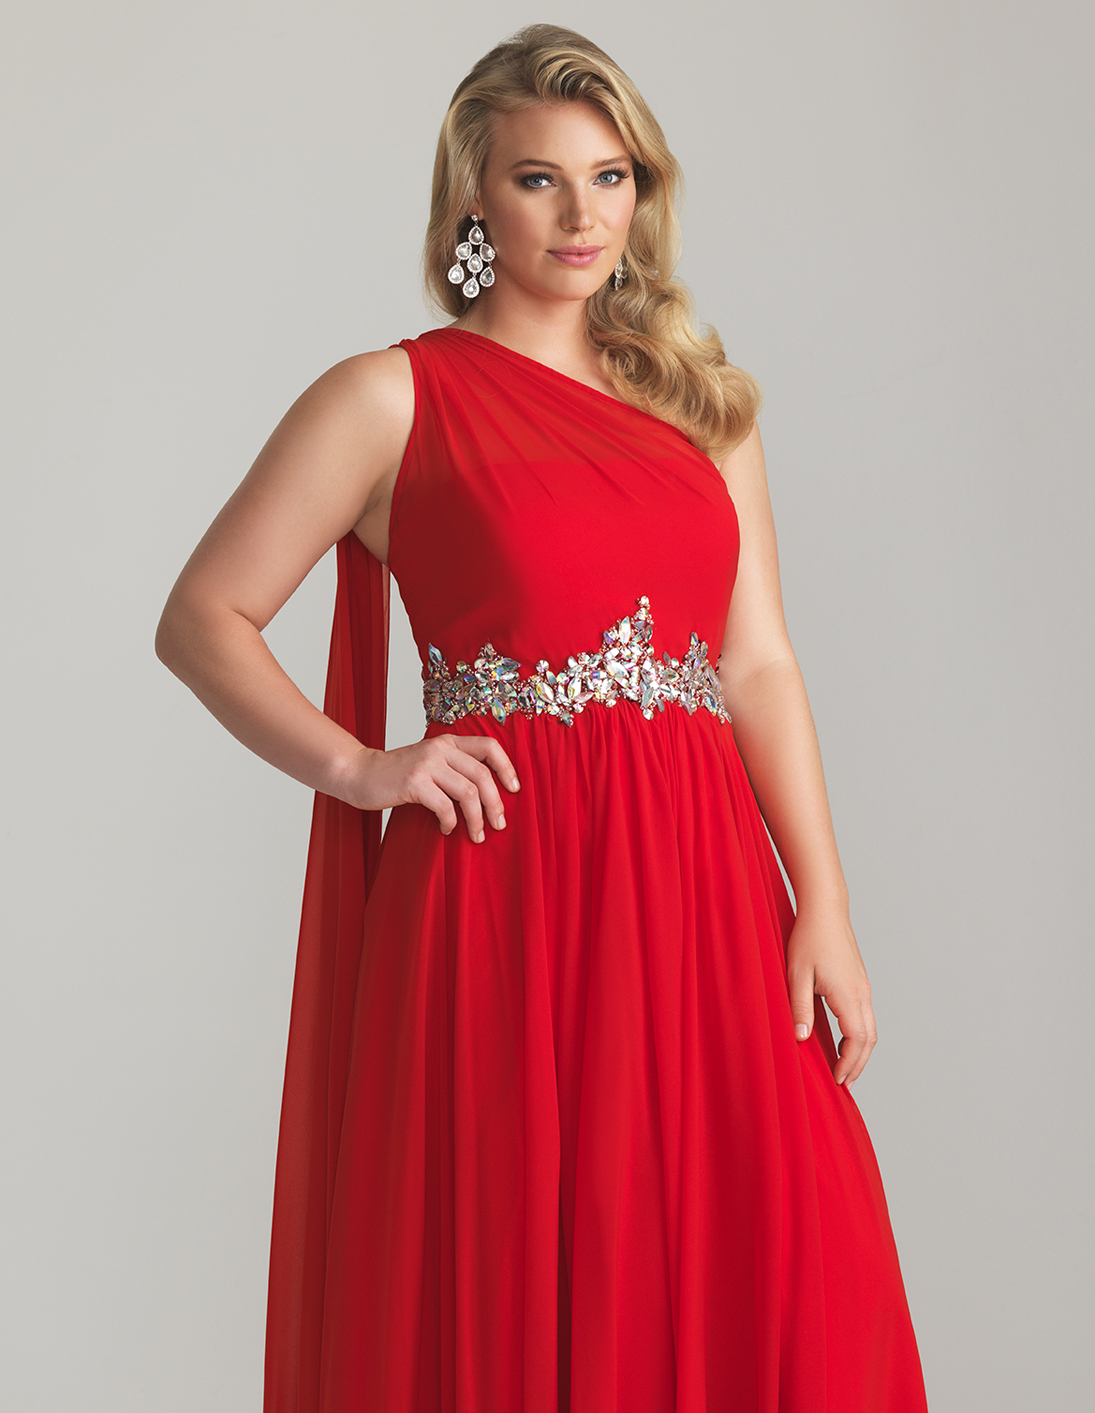 Women S Evening Dresses - Page 51 of 503 - Young Plus Size Party ...